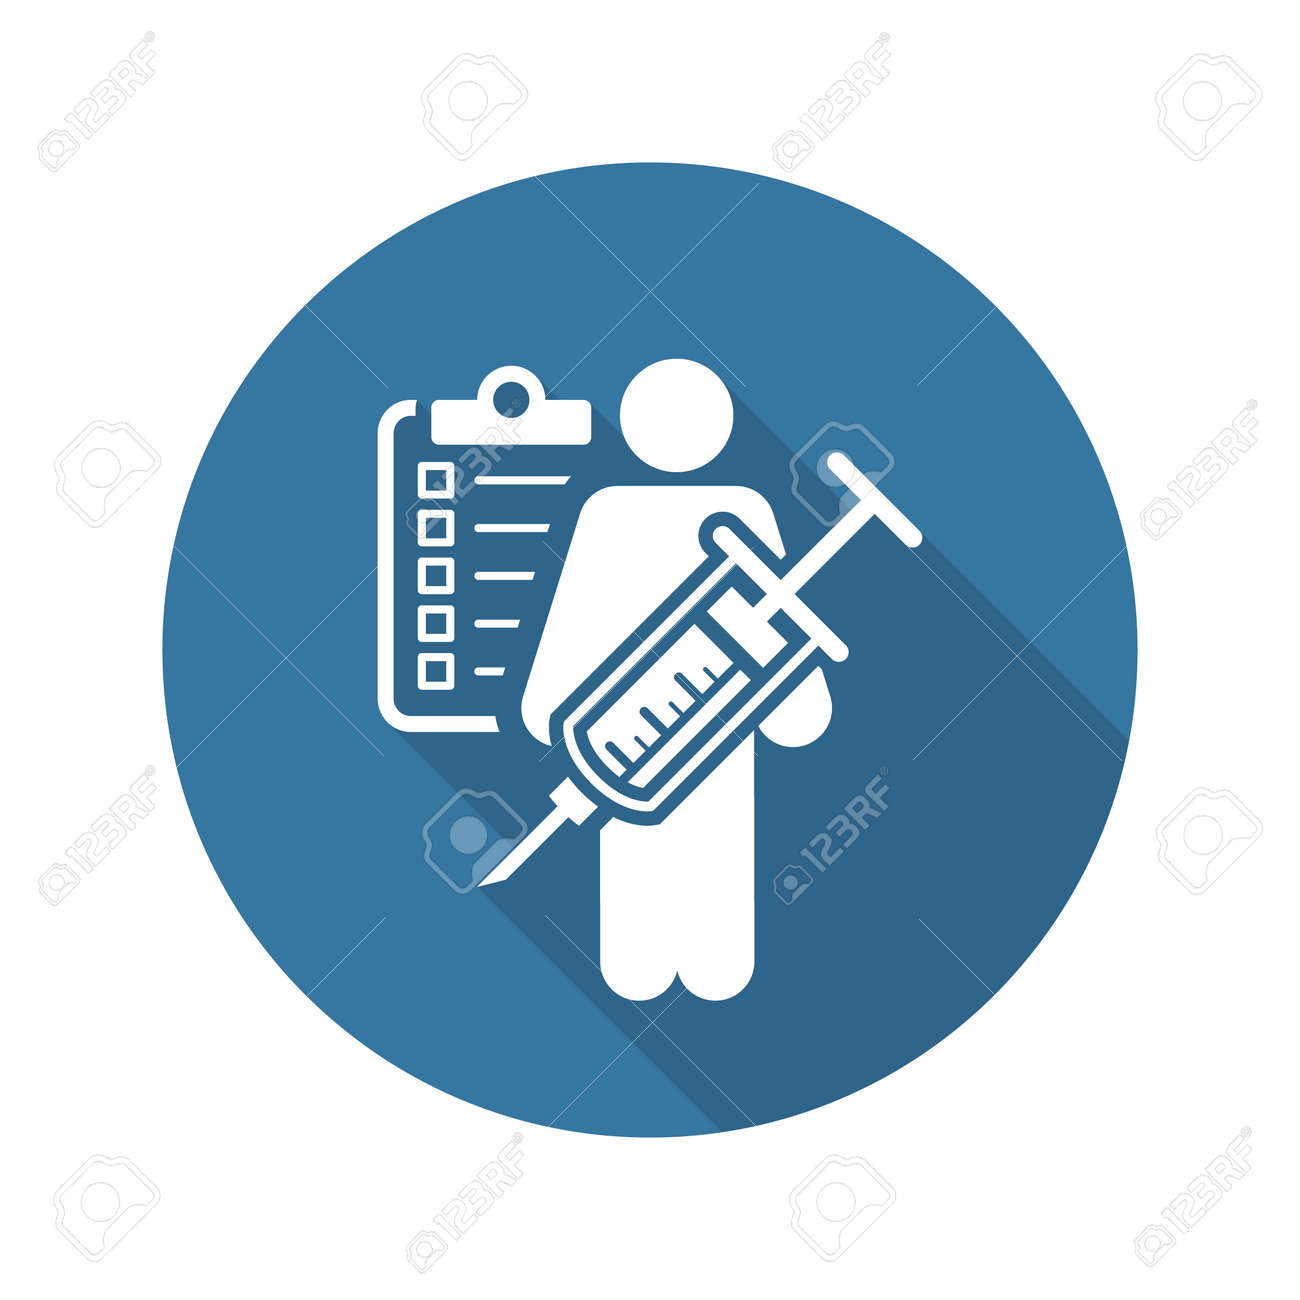 Vaccination and Medical Services Icon. Flat Design. Isolated. - 50448760